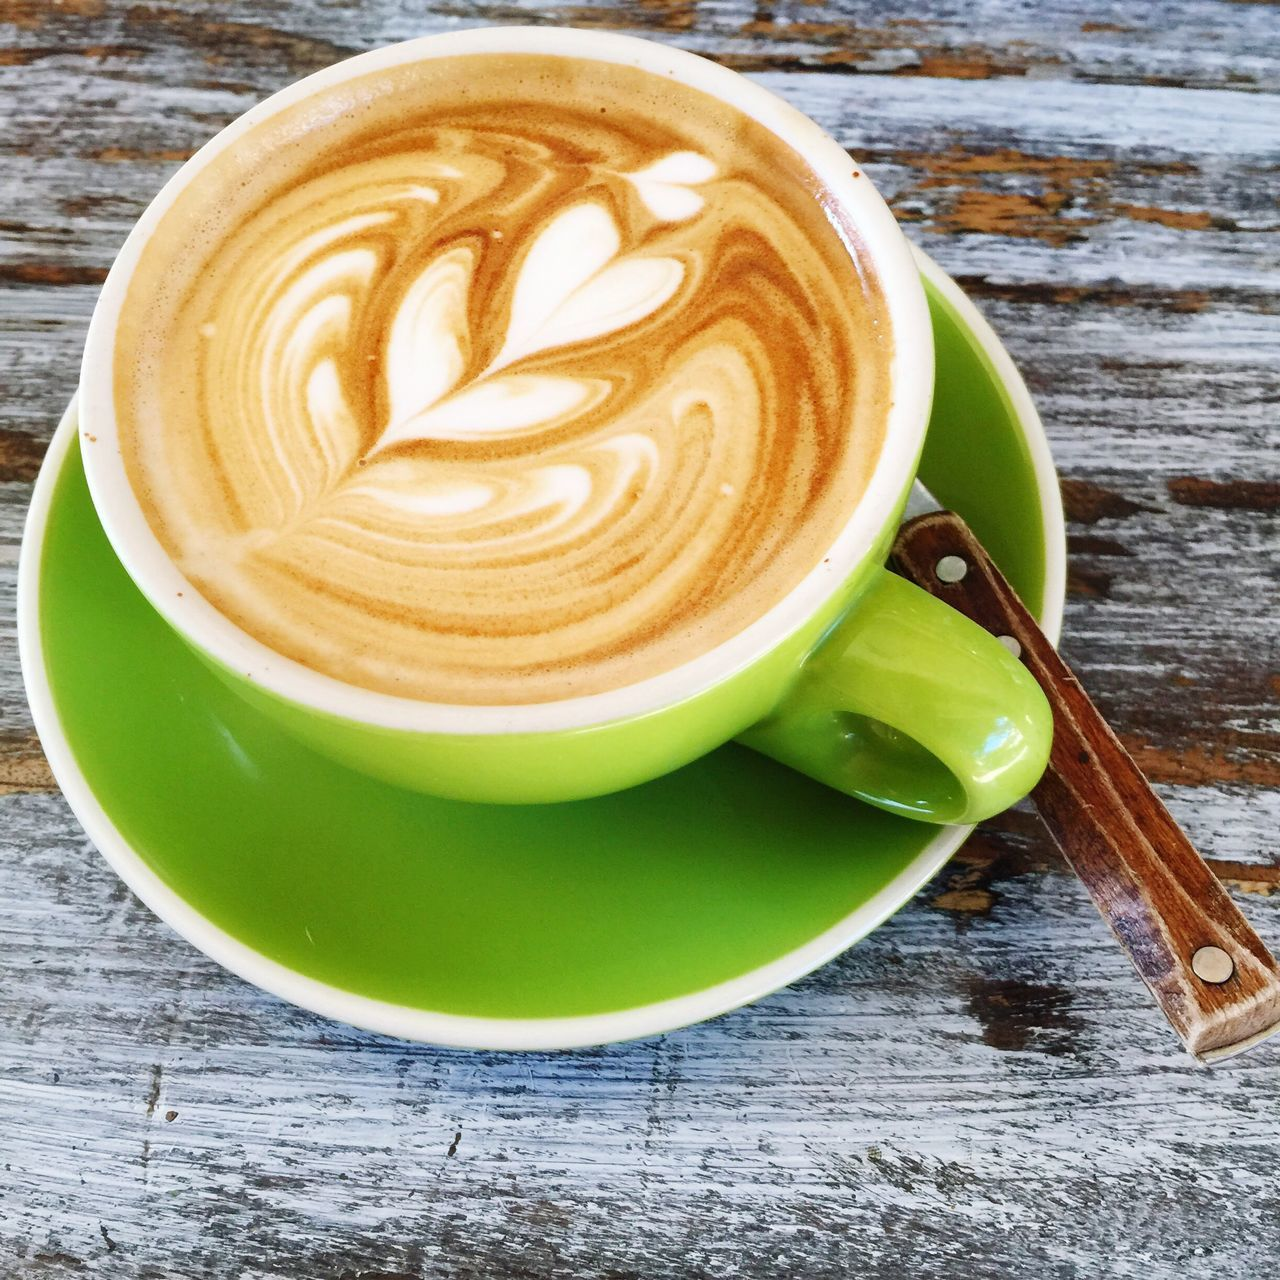 Flat White Days ☕️ Drink Coffee Cup Coffee - Drink Food And Drink Refreshment Cappuccino Table No People Cup Froth Art Frothy Drink Close-up Latte Day Flatwhite Flatwhitecoffee Coffee Time Coffee Break Sydney Australia Sydney, Australia